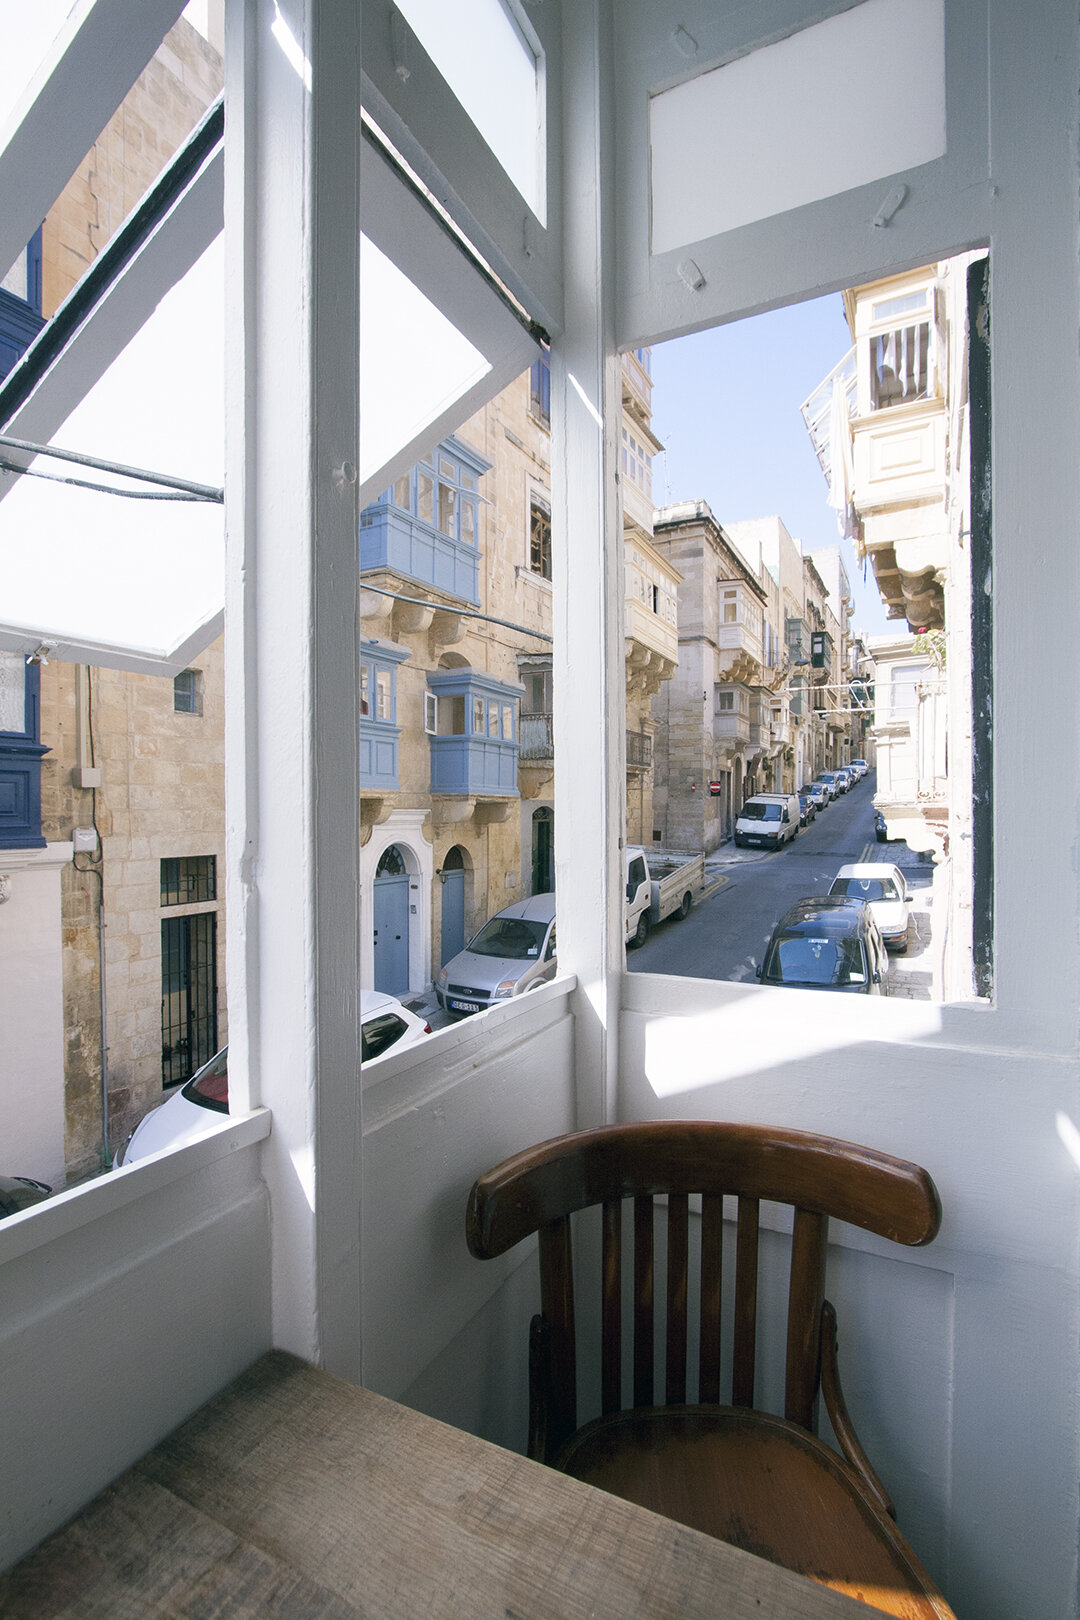 - All of Valletta is very accessible on foot. You can probably walk all around the peninsula's ring road in less than an hour. We suggest you have a walk around on a Sunday or in the evenings, when all the hustle & bustle dies down, and get lost in its many steps & alleys, bastions & shores and enchanting architectural detailing.